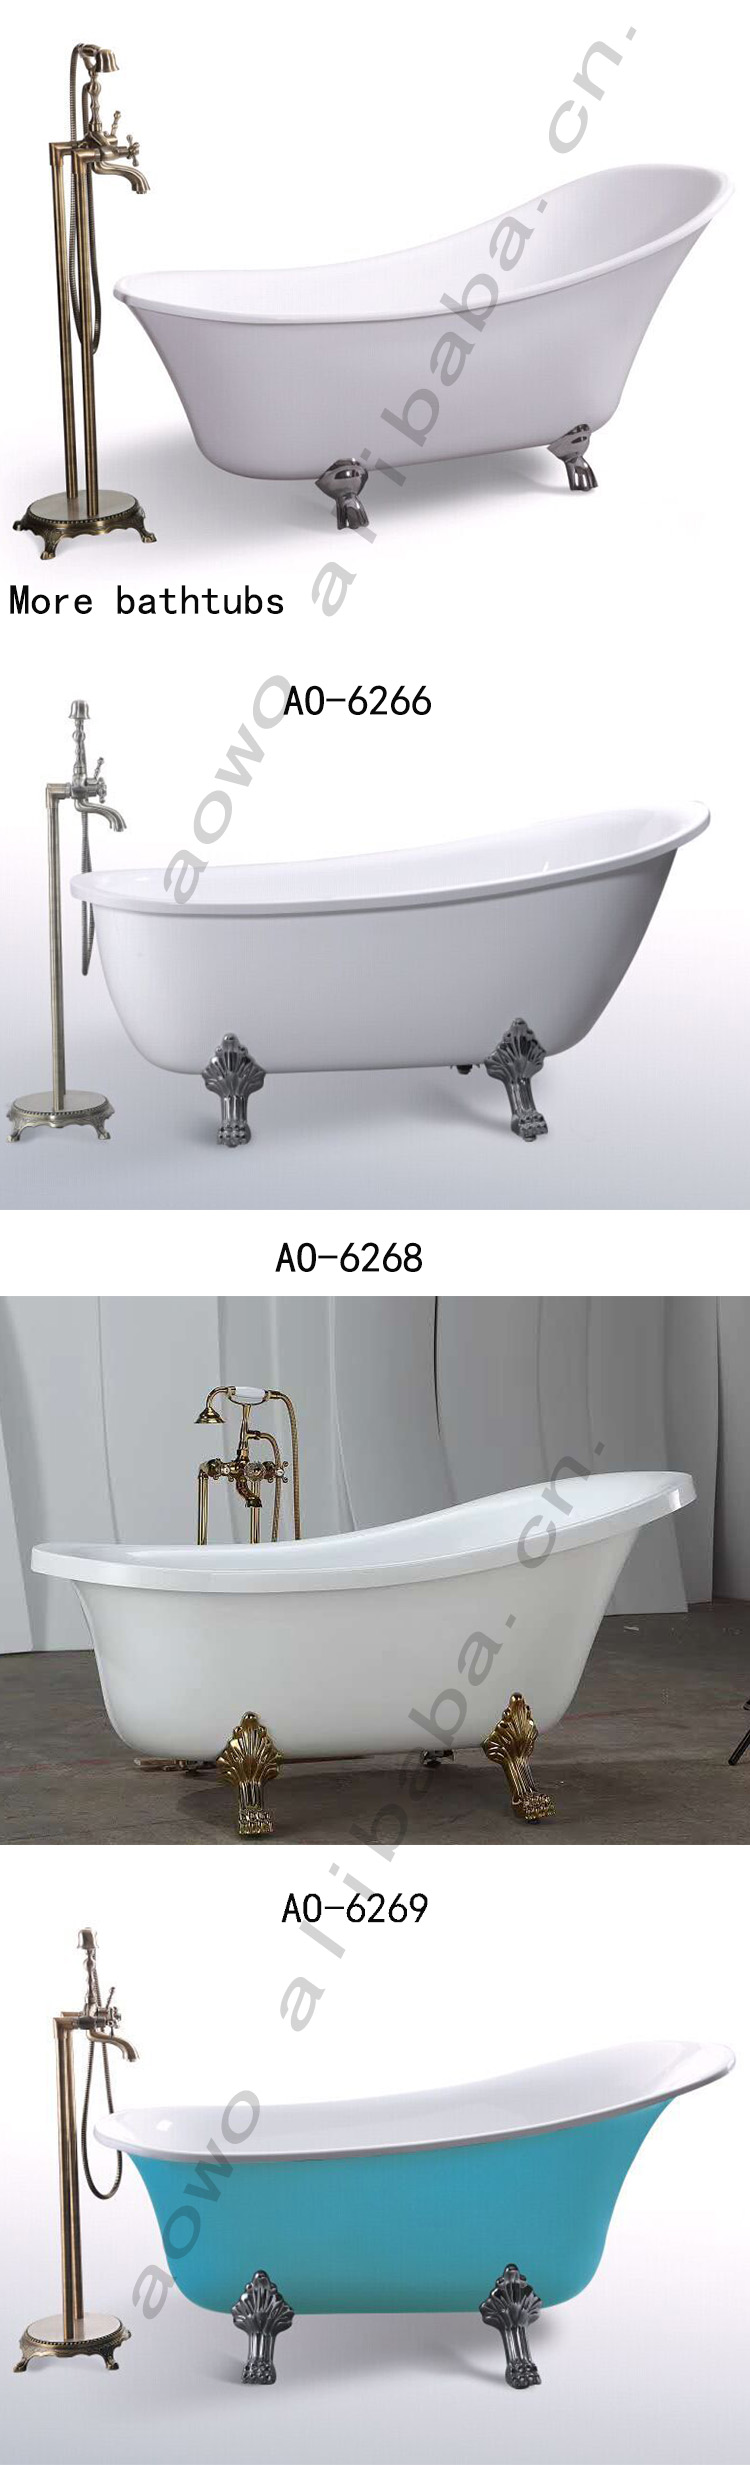 high quality classic freestanding bathtub with claw foot european style hotel home bathroom soaking bathtub AO-6267